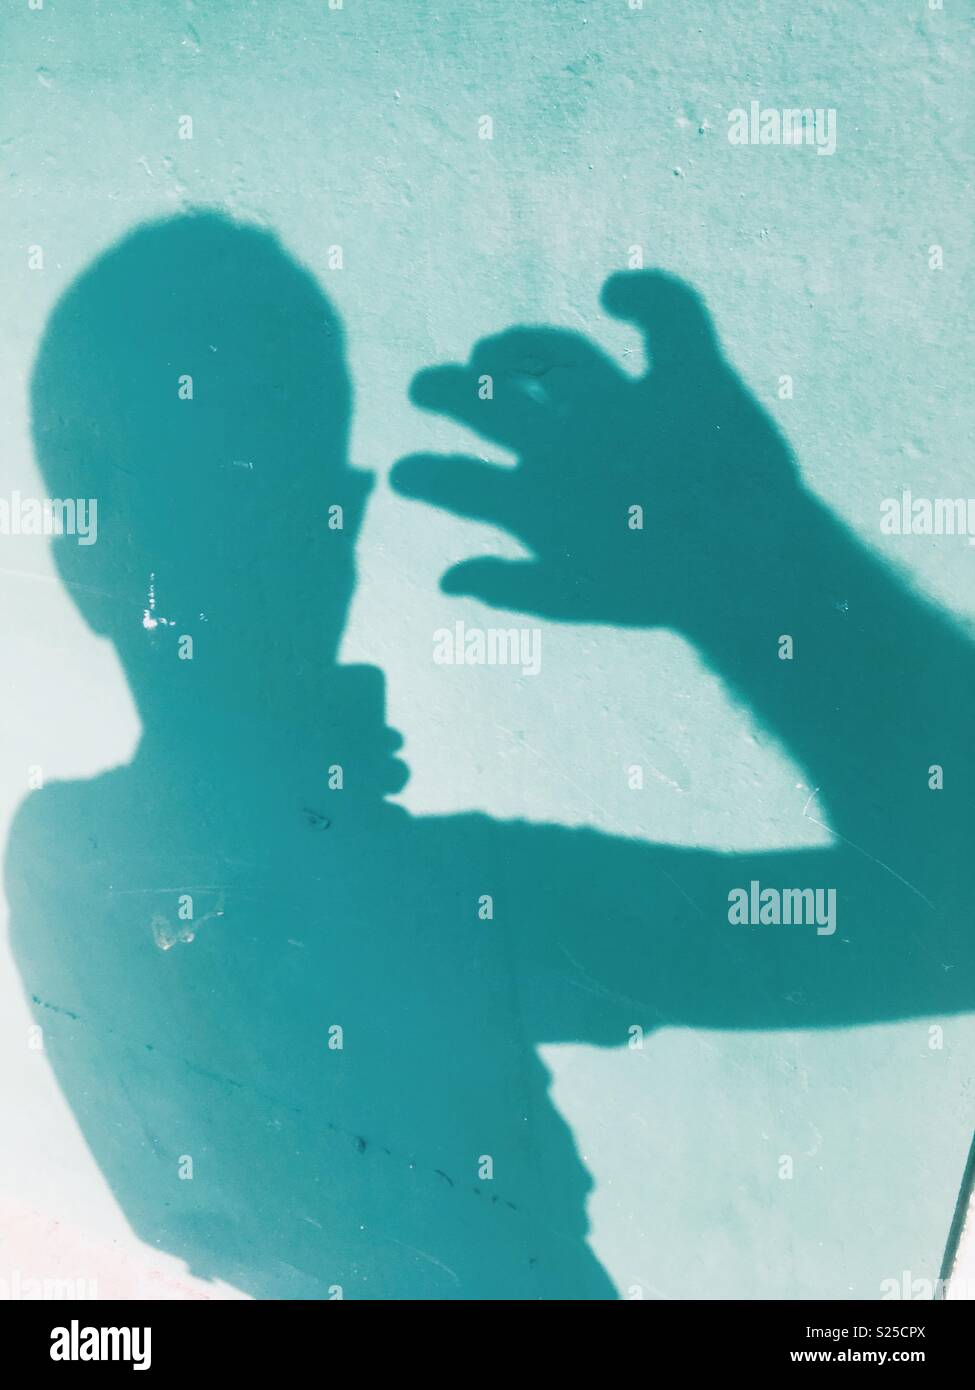 Shadow selfie - Stock Image